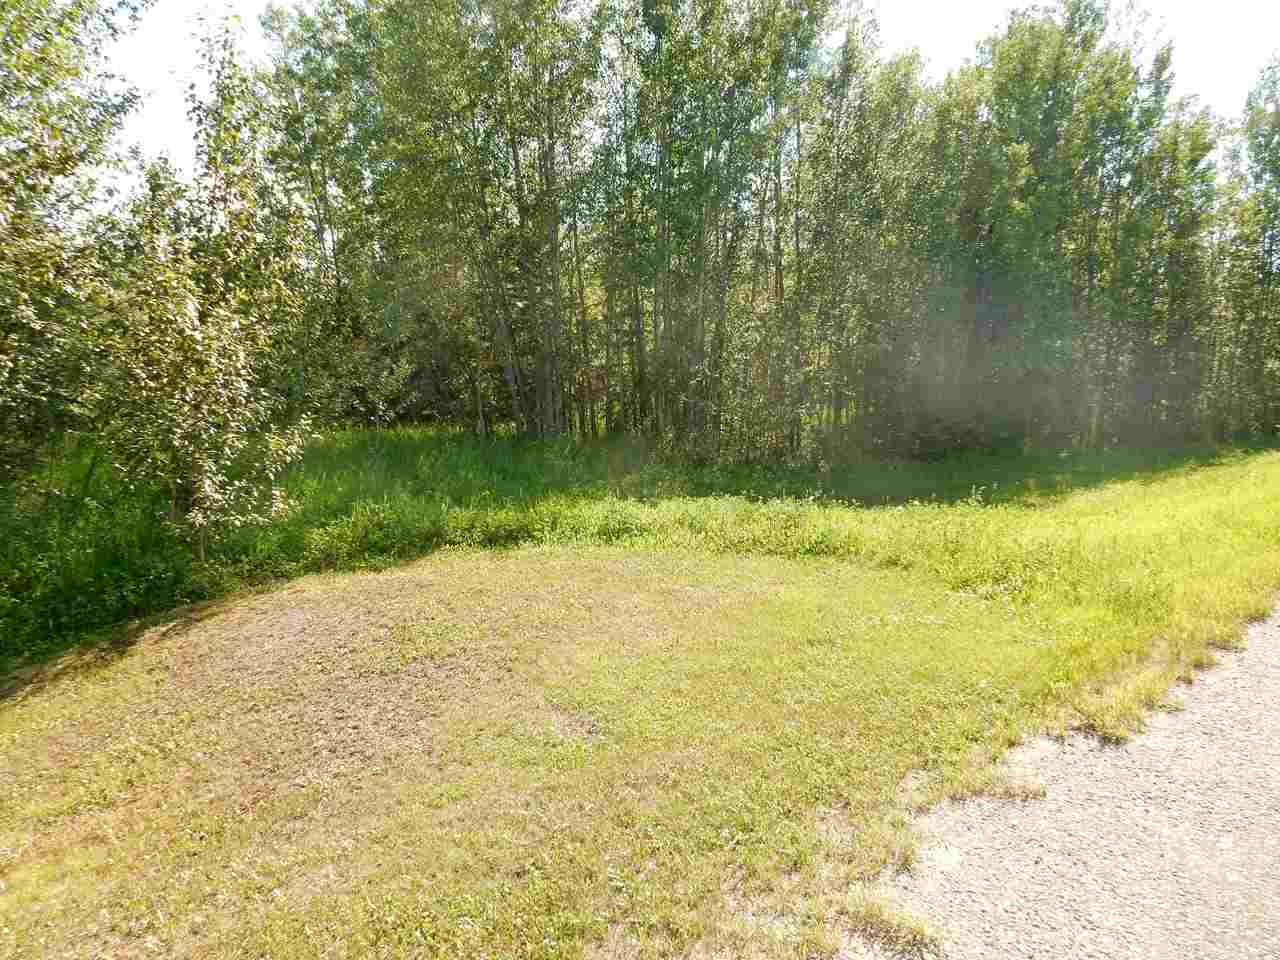 Photo 6: LOT 18 Pinebrook Estates: Rural Thorhild County Rural Land/Vacant Lot for sale : MLS® # E4010007